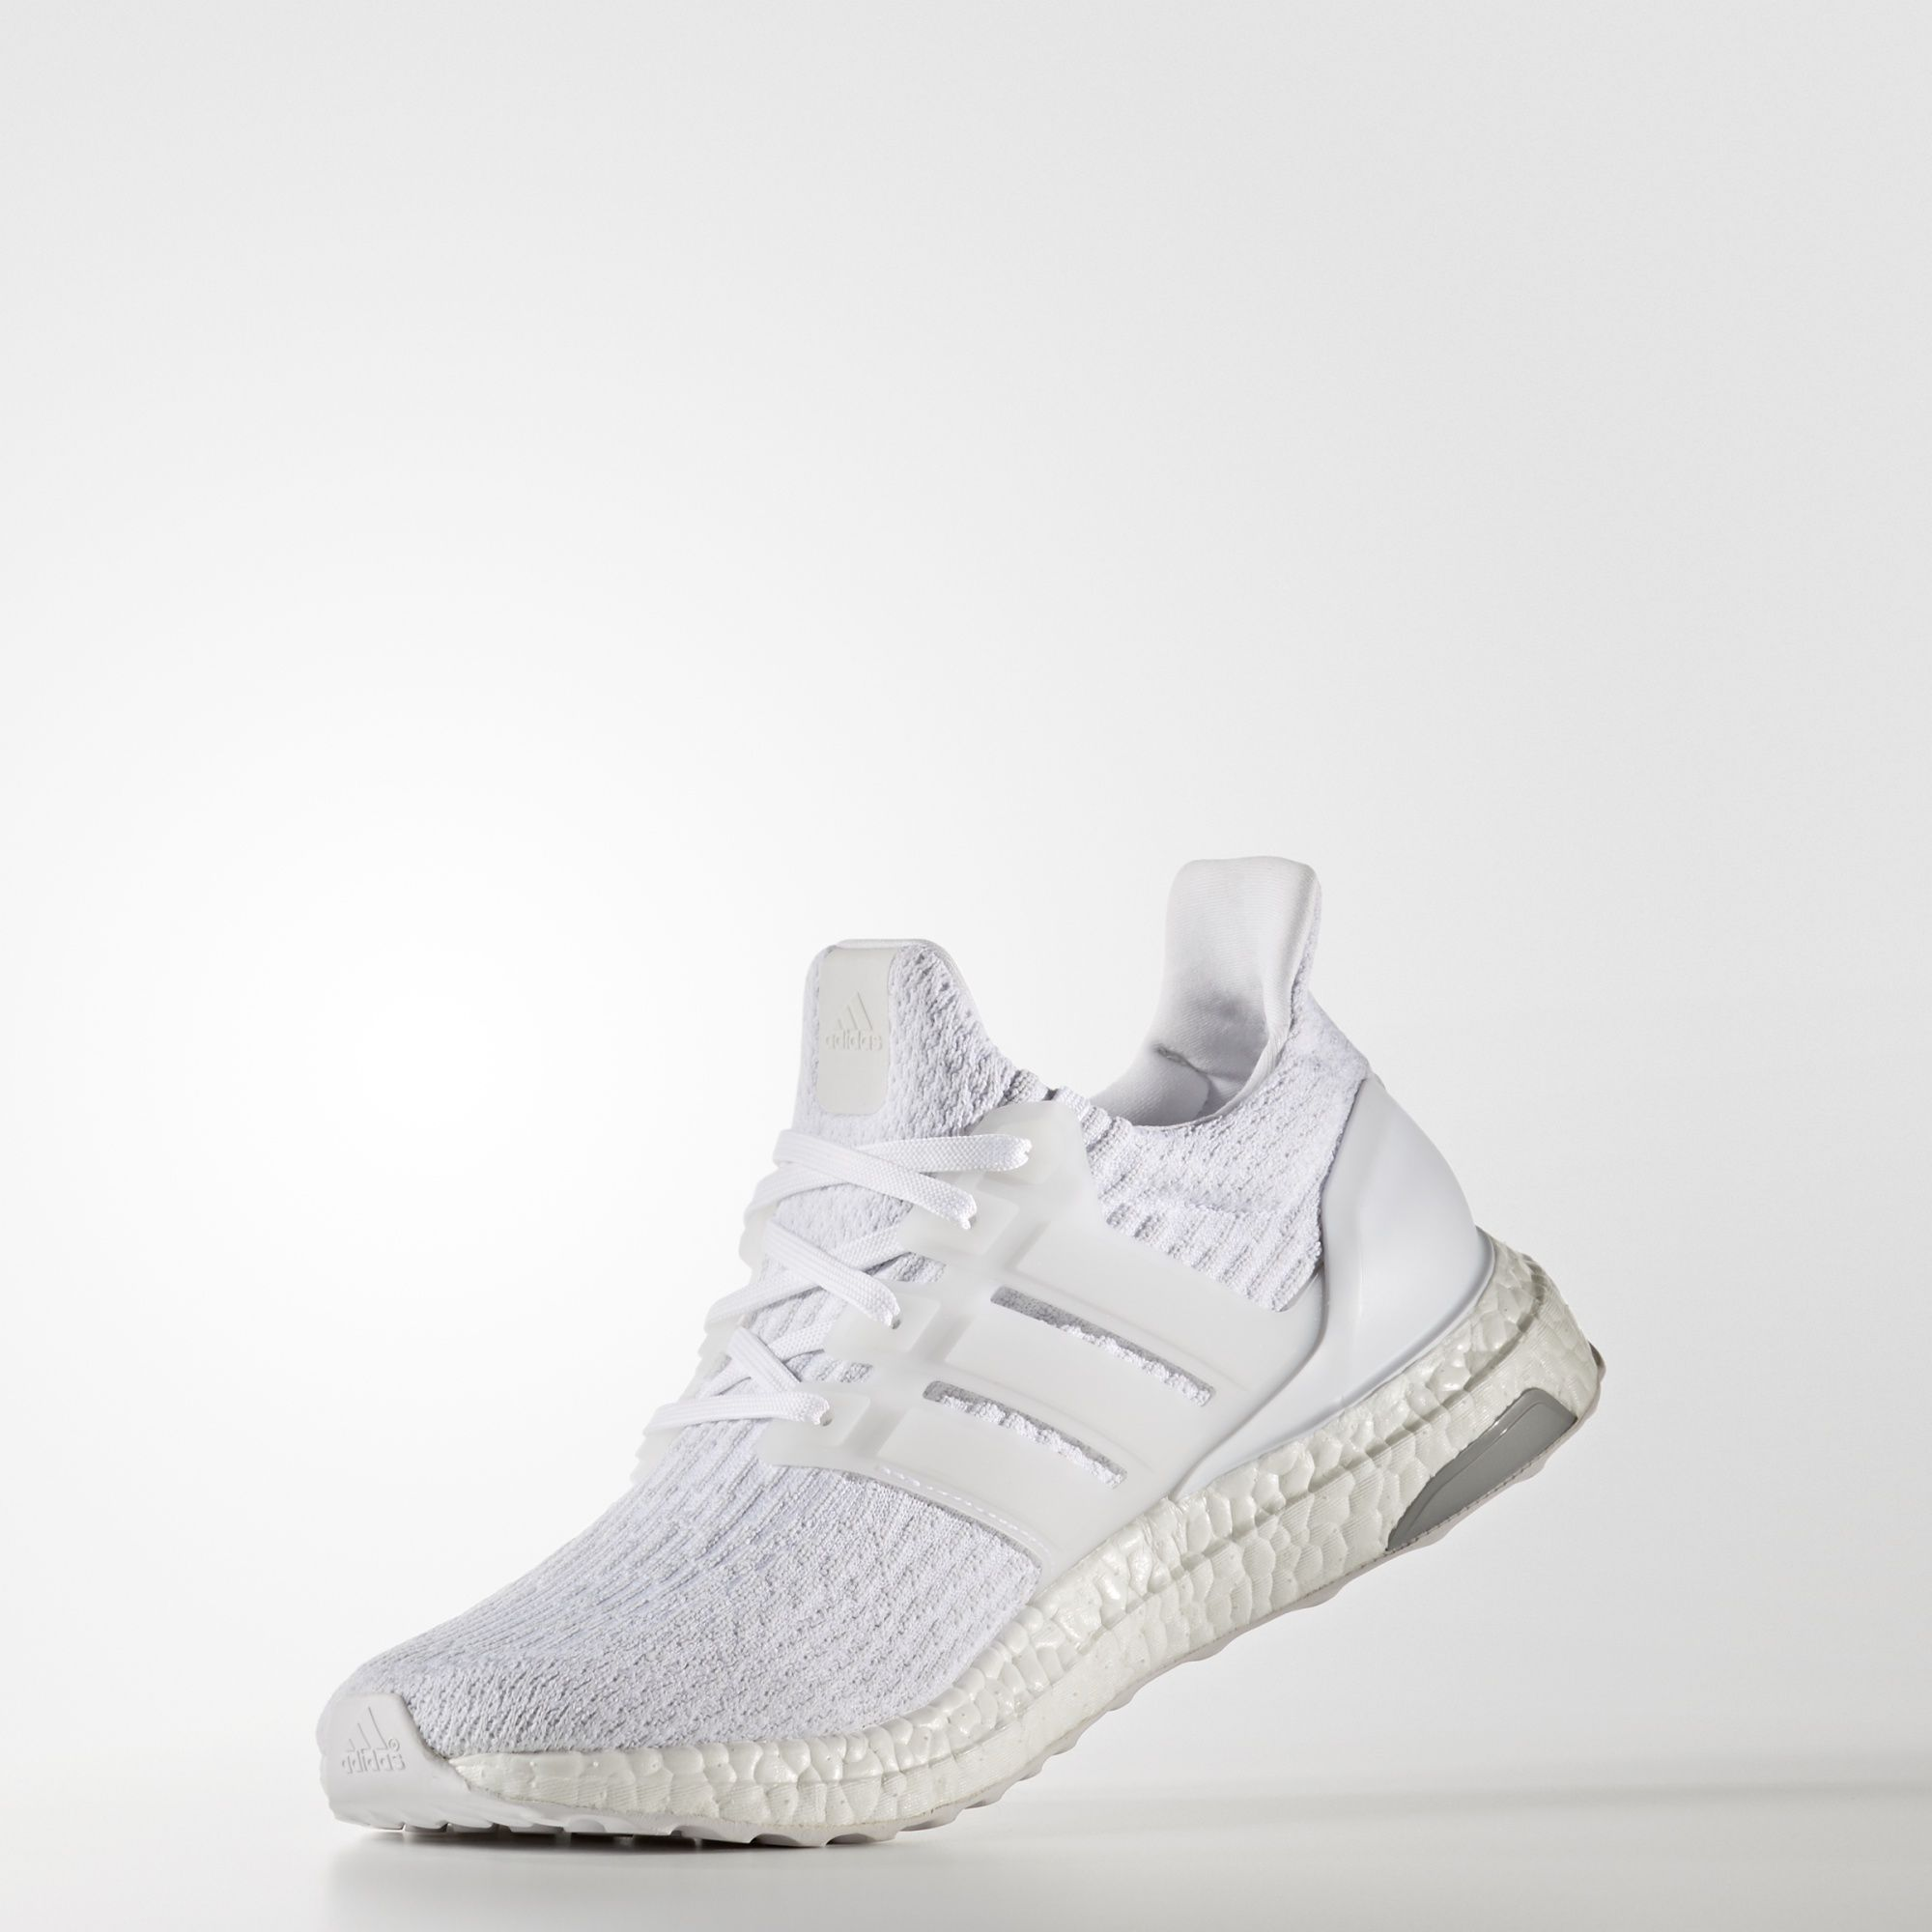 adidas ultra boost 3 0 all white BA8841 3